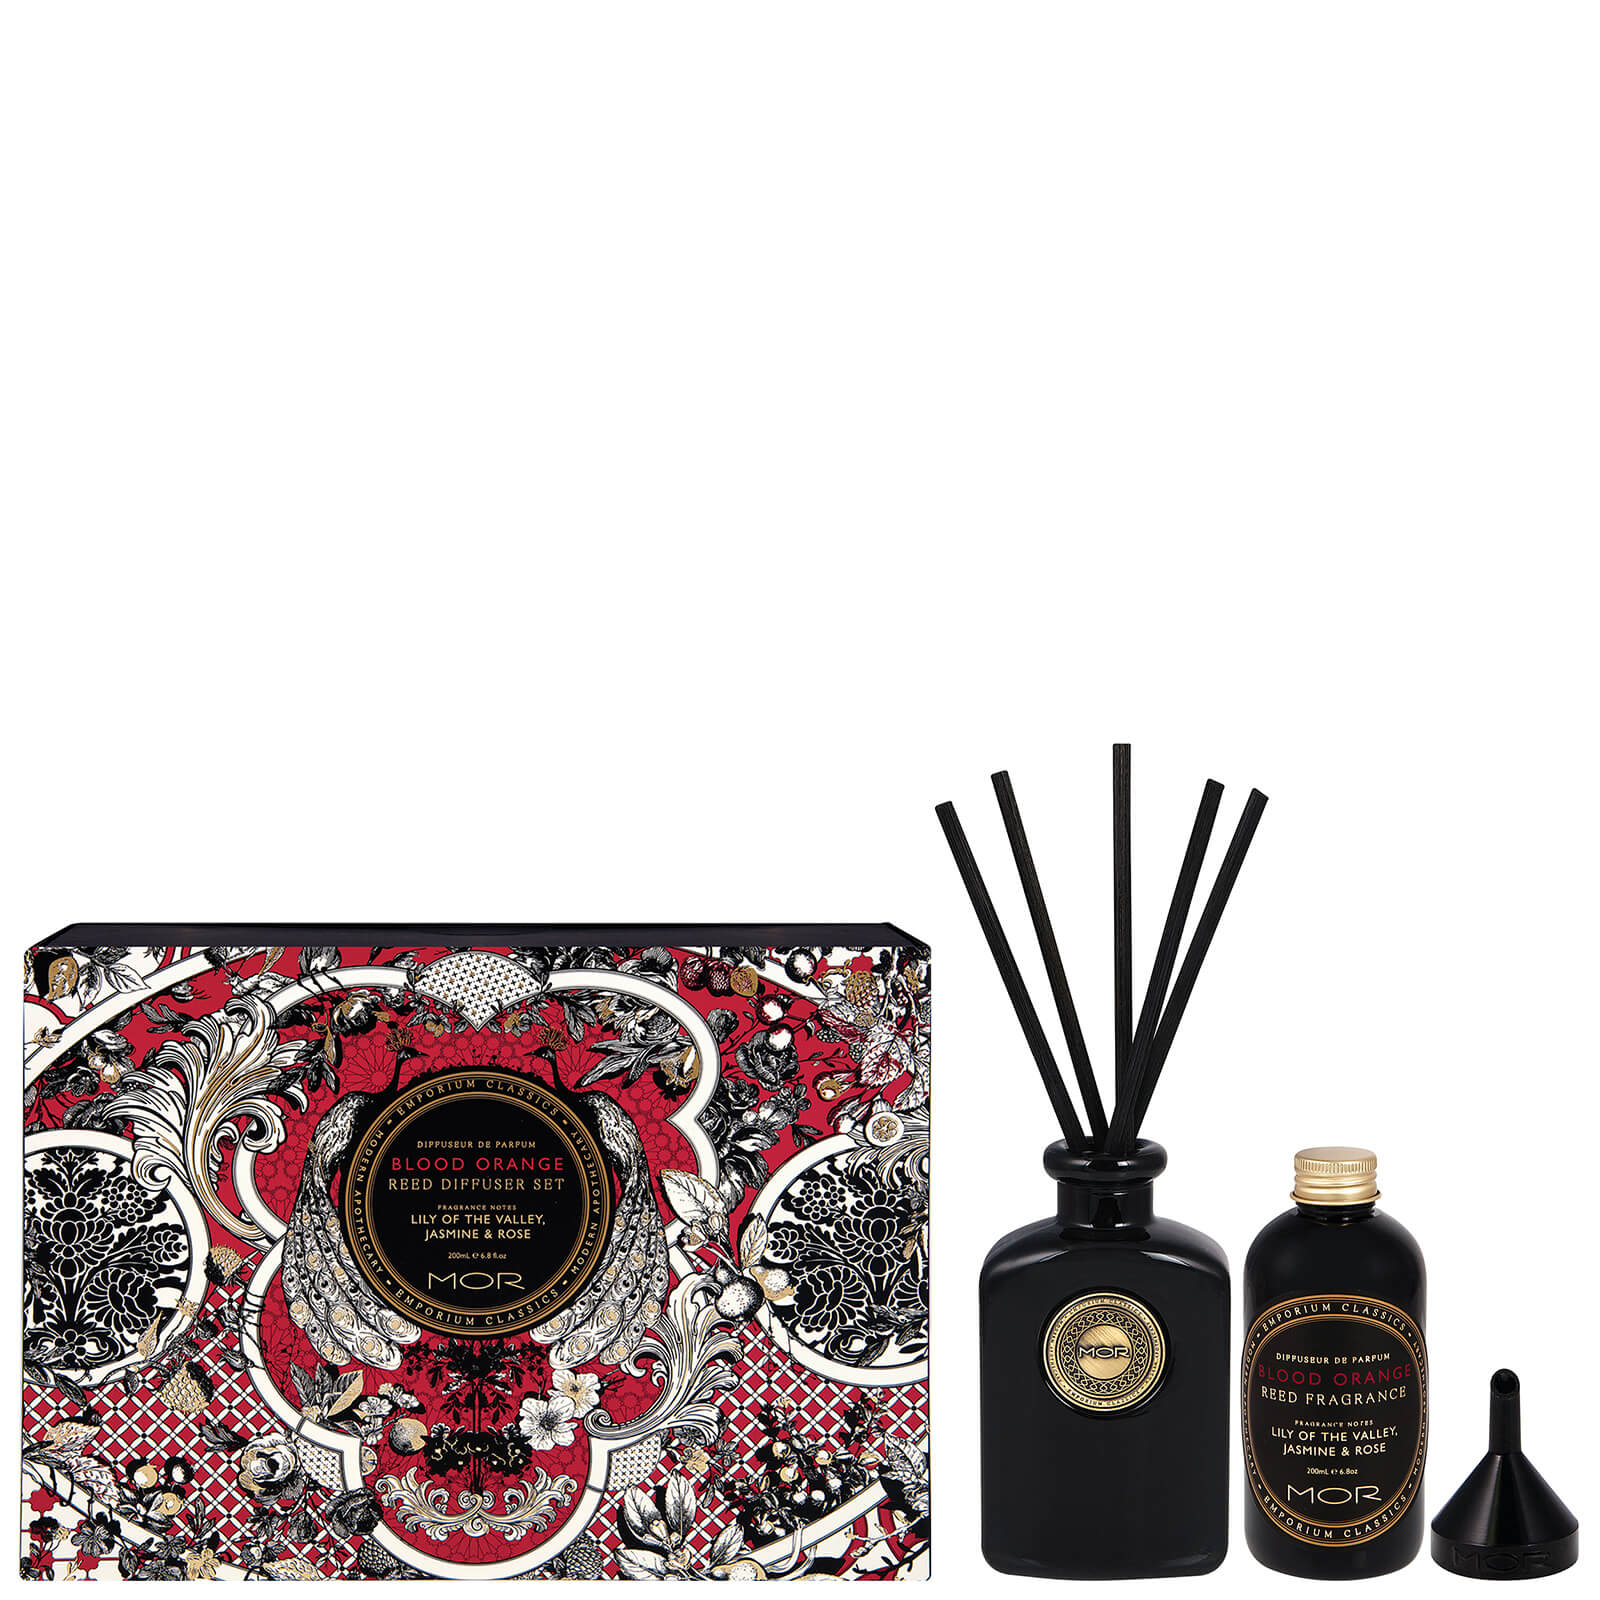 MOR Blood Orange Home Diffuser Kit 200ml